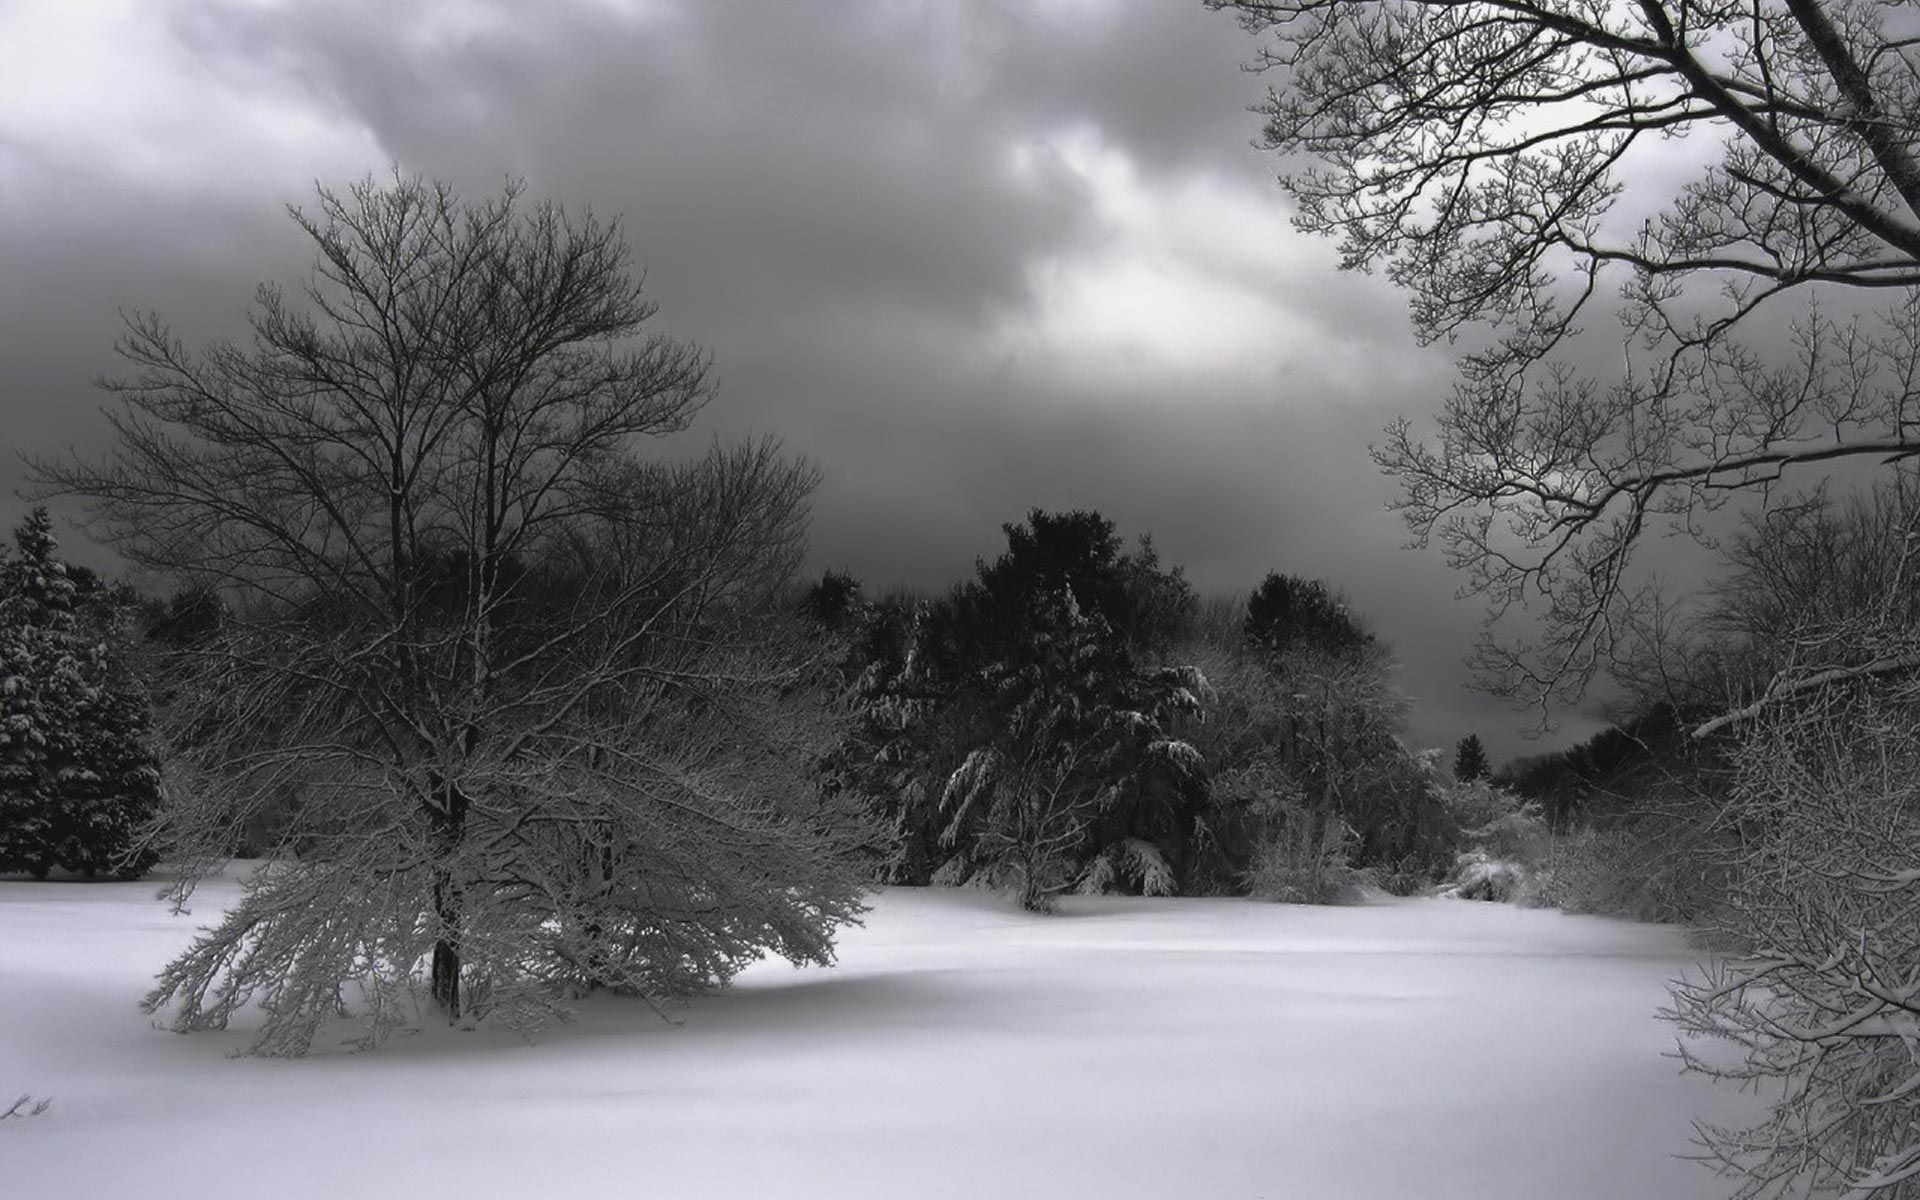 Pond Icy Winter Scene Wallpaper Computer Inspirational All   We 1920x1200